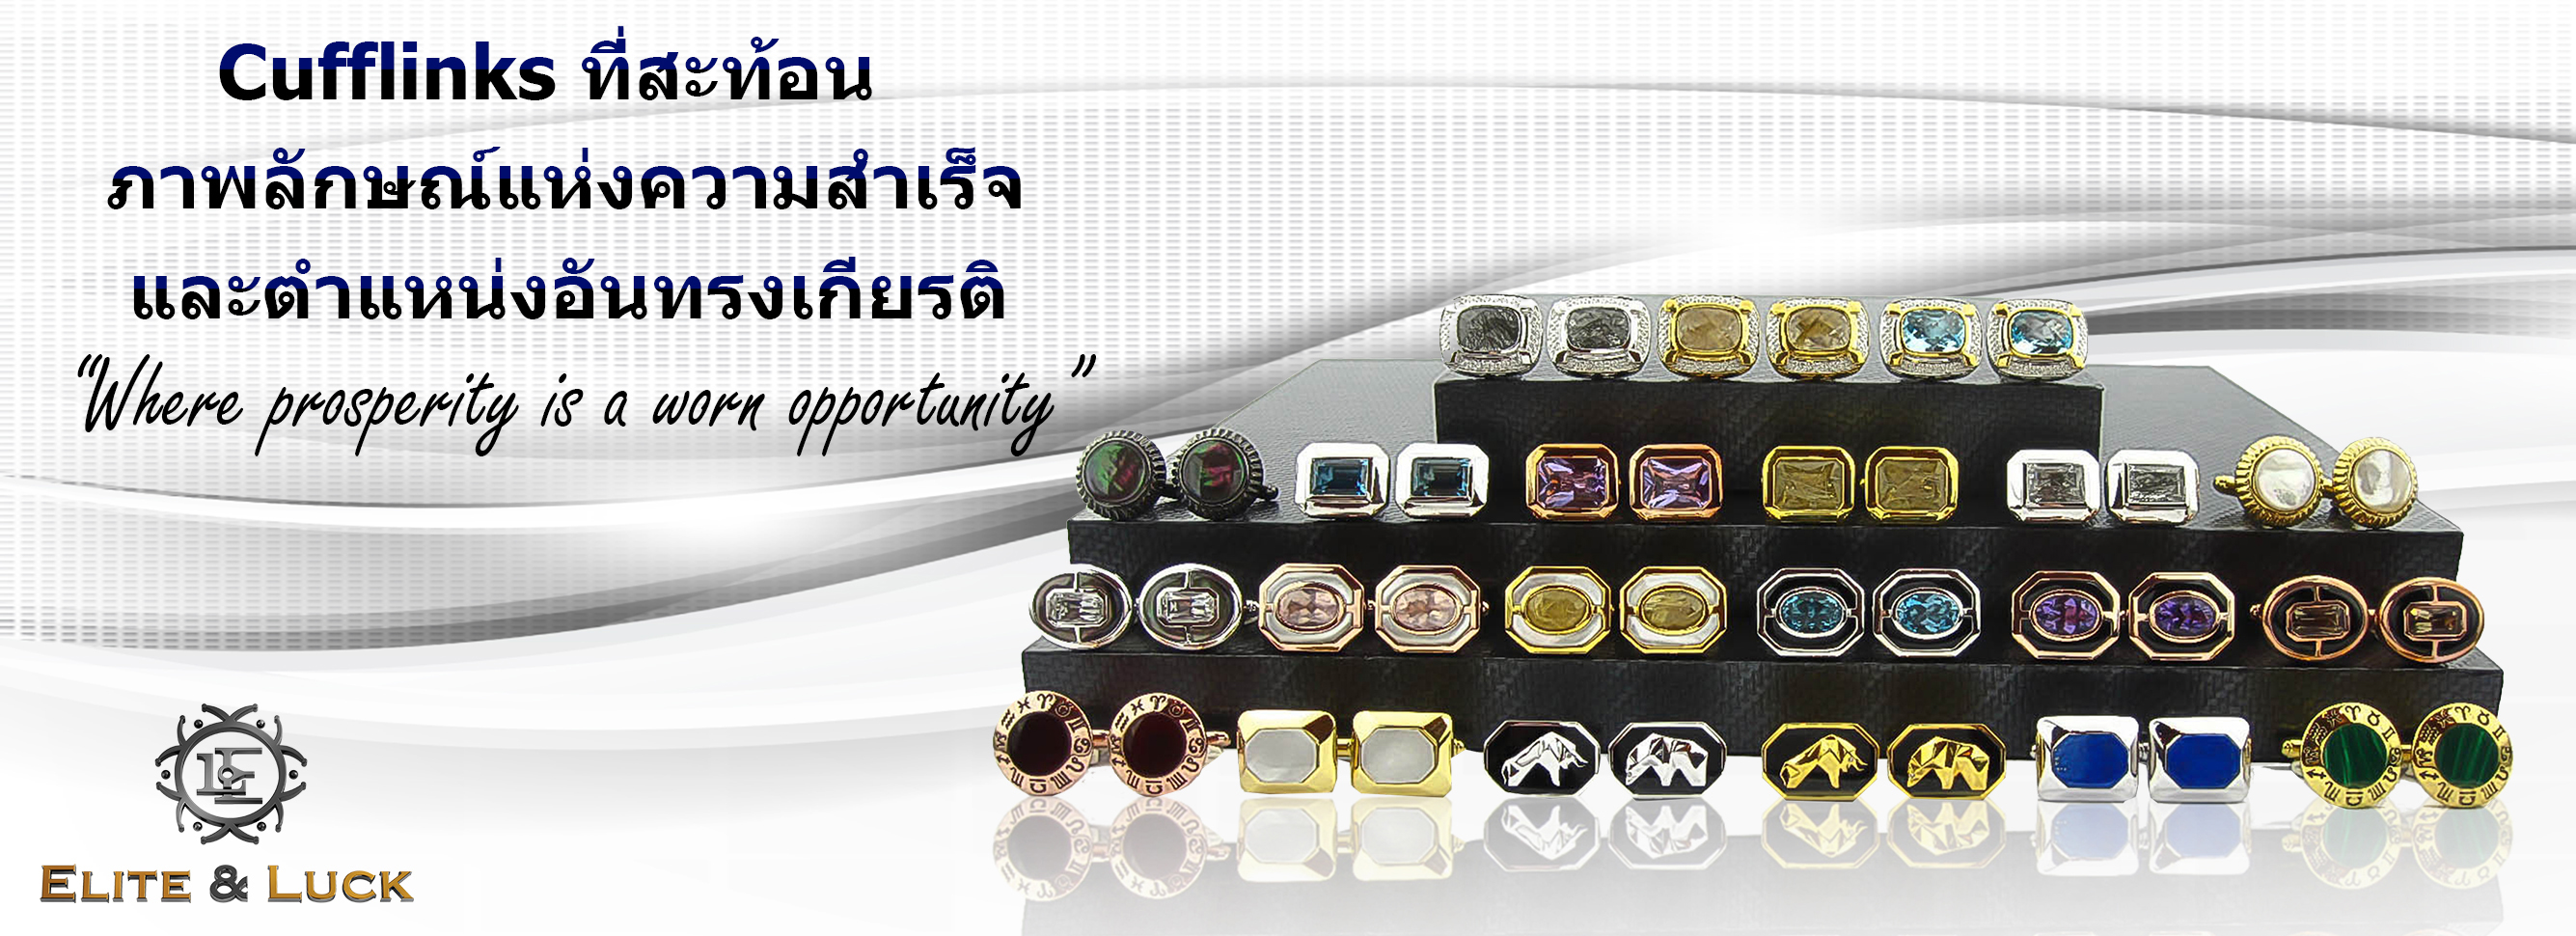 Elite & Luck : Cufflinks, Rings, and Accessories - Thailand